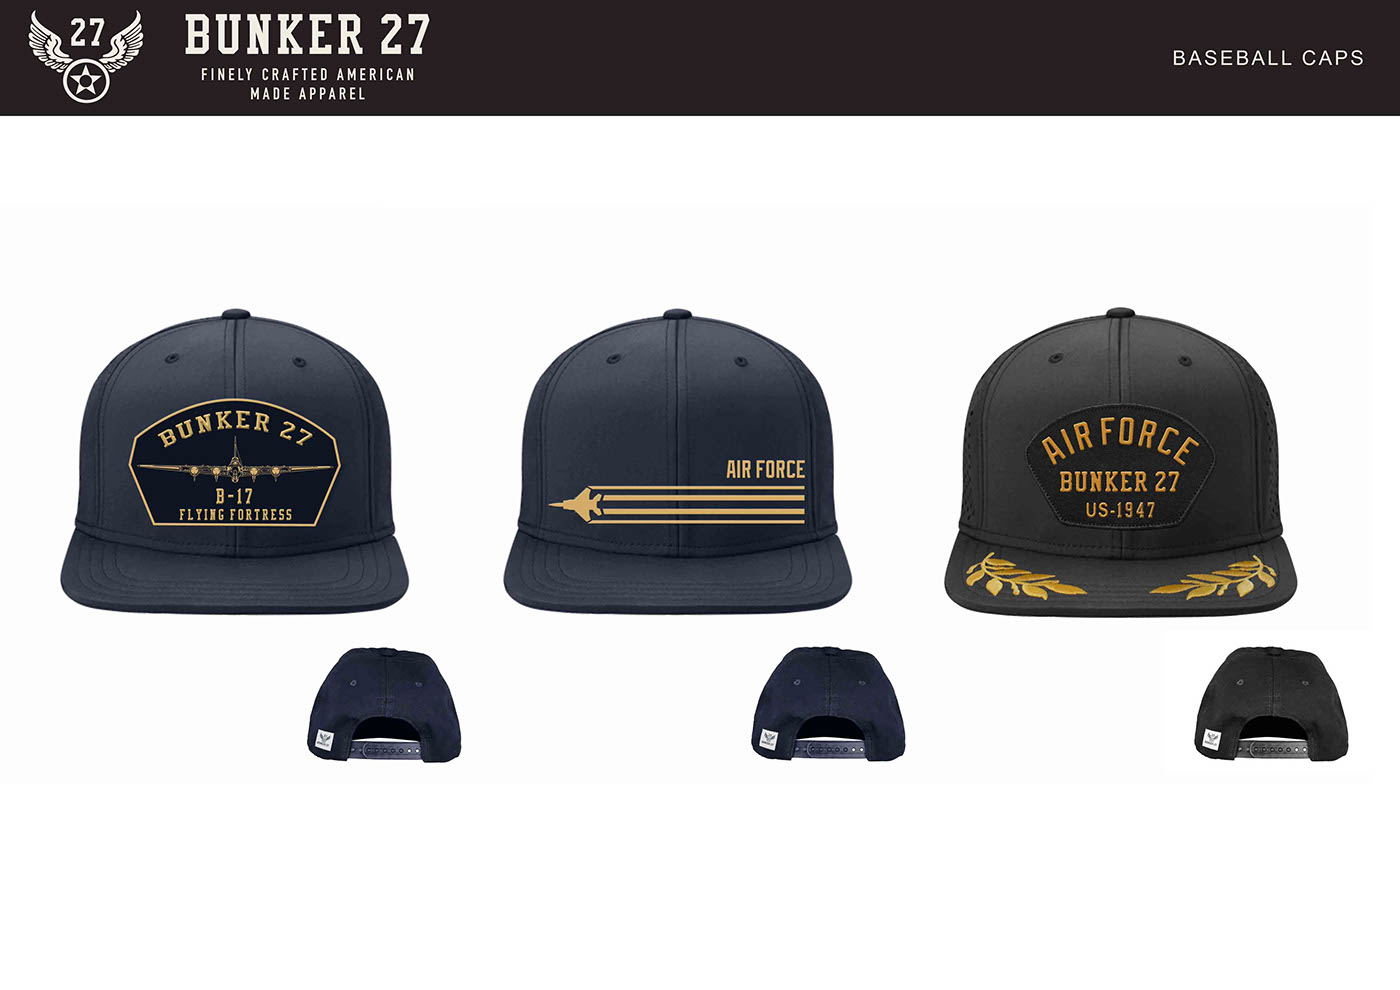 f2f4274c626 BUNKER27.COM. Save to Collection. Follow Following Unfollow. Bunker 27 Company  branding ...